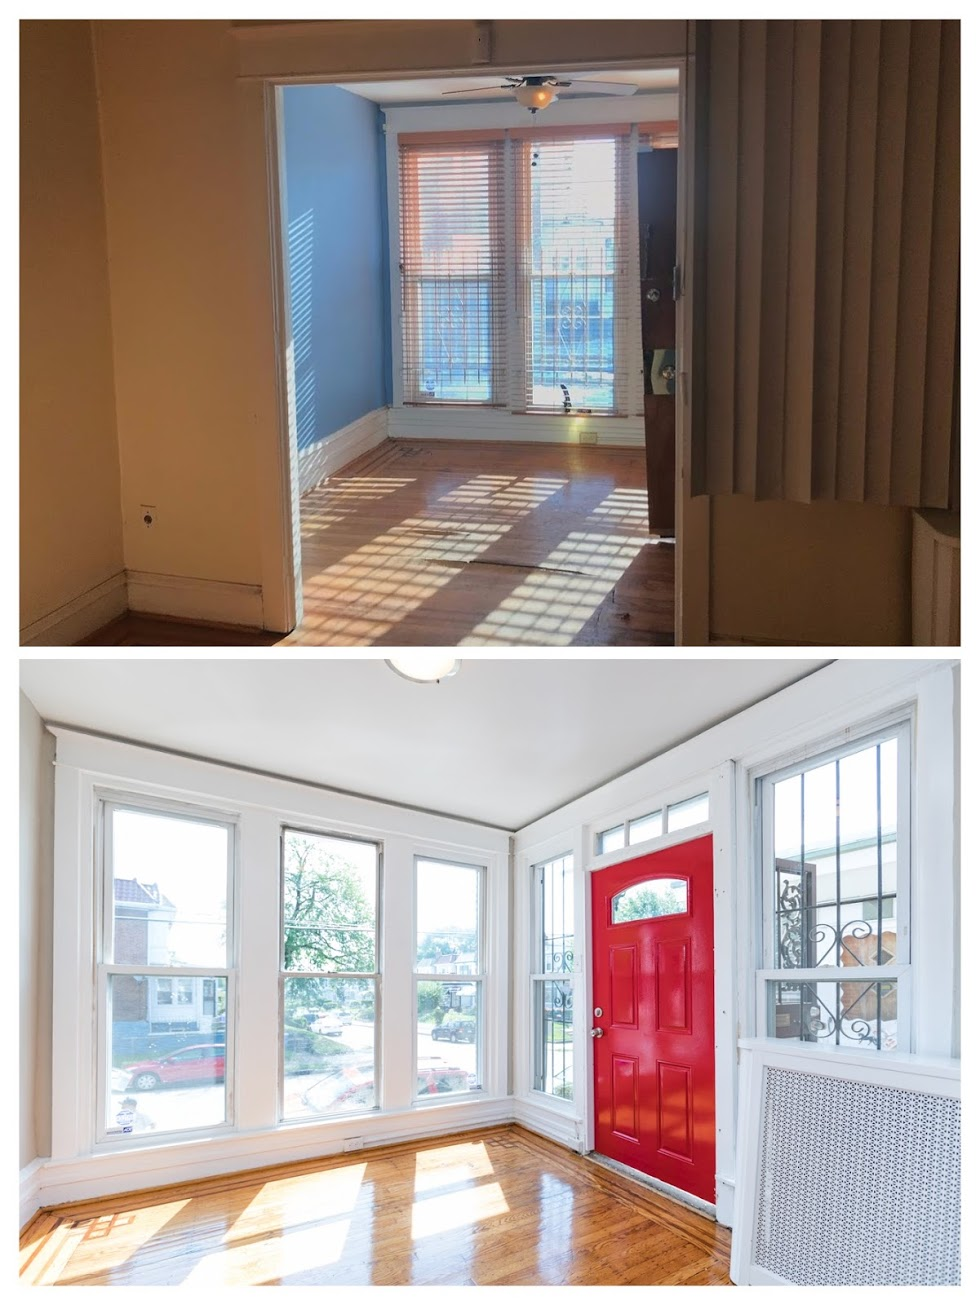 BEfore and AfteR IN North-EAST Philadelphia - Glimpse of a Before and After in one of our entryways in North-east Philadelphia.